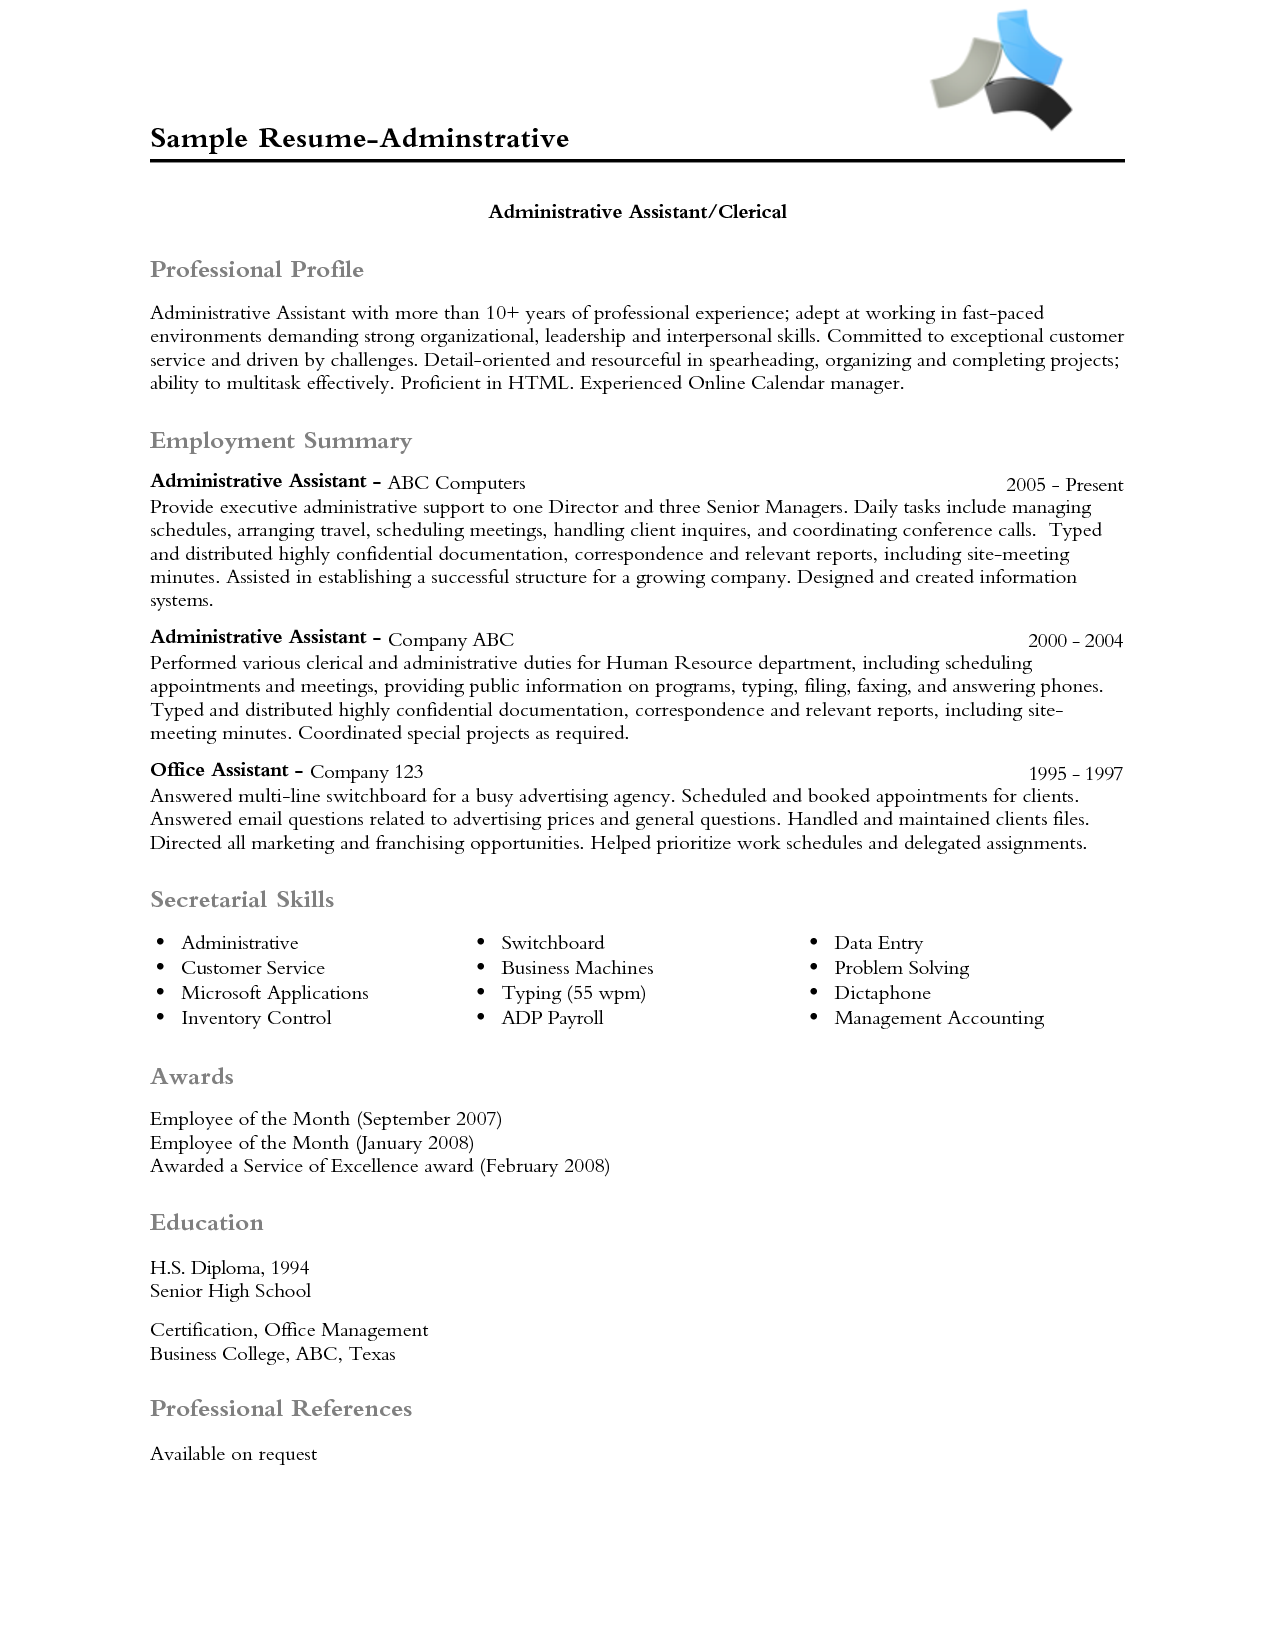 Professional Summary Resume Best Stockroom Manager Resume Samples  Httpwwwresumecareer Design Ideas